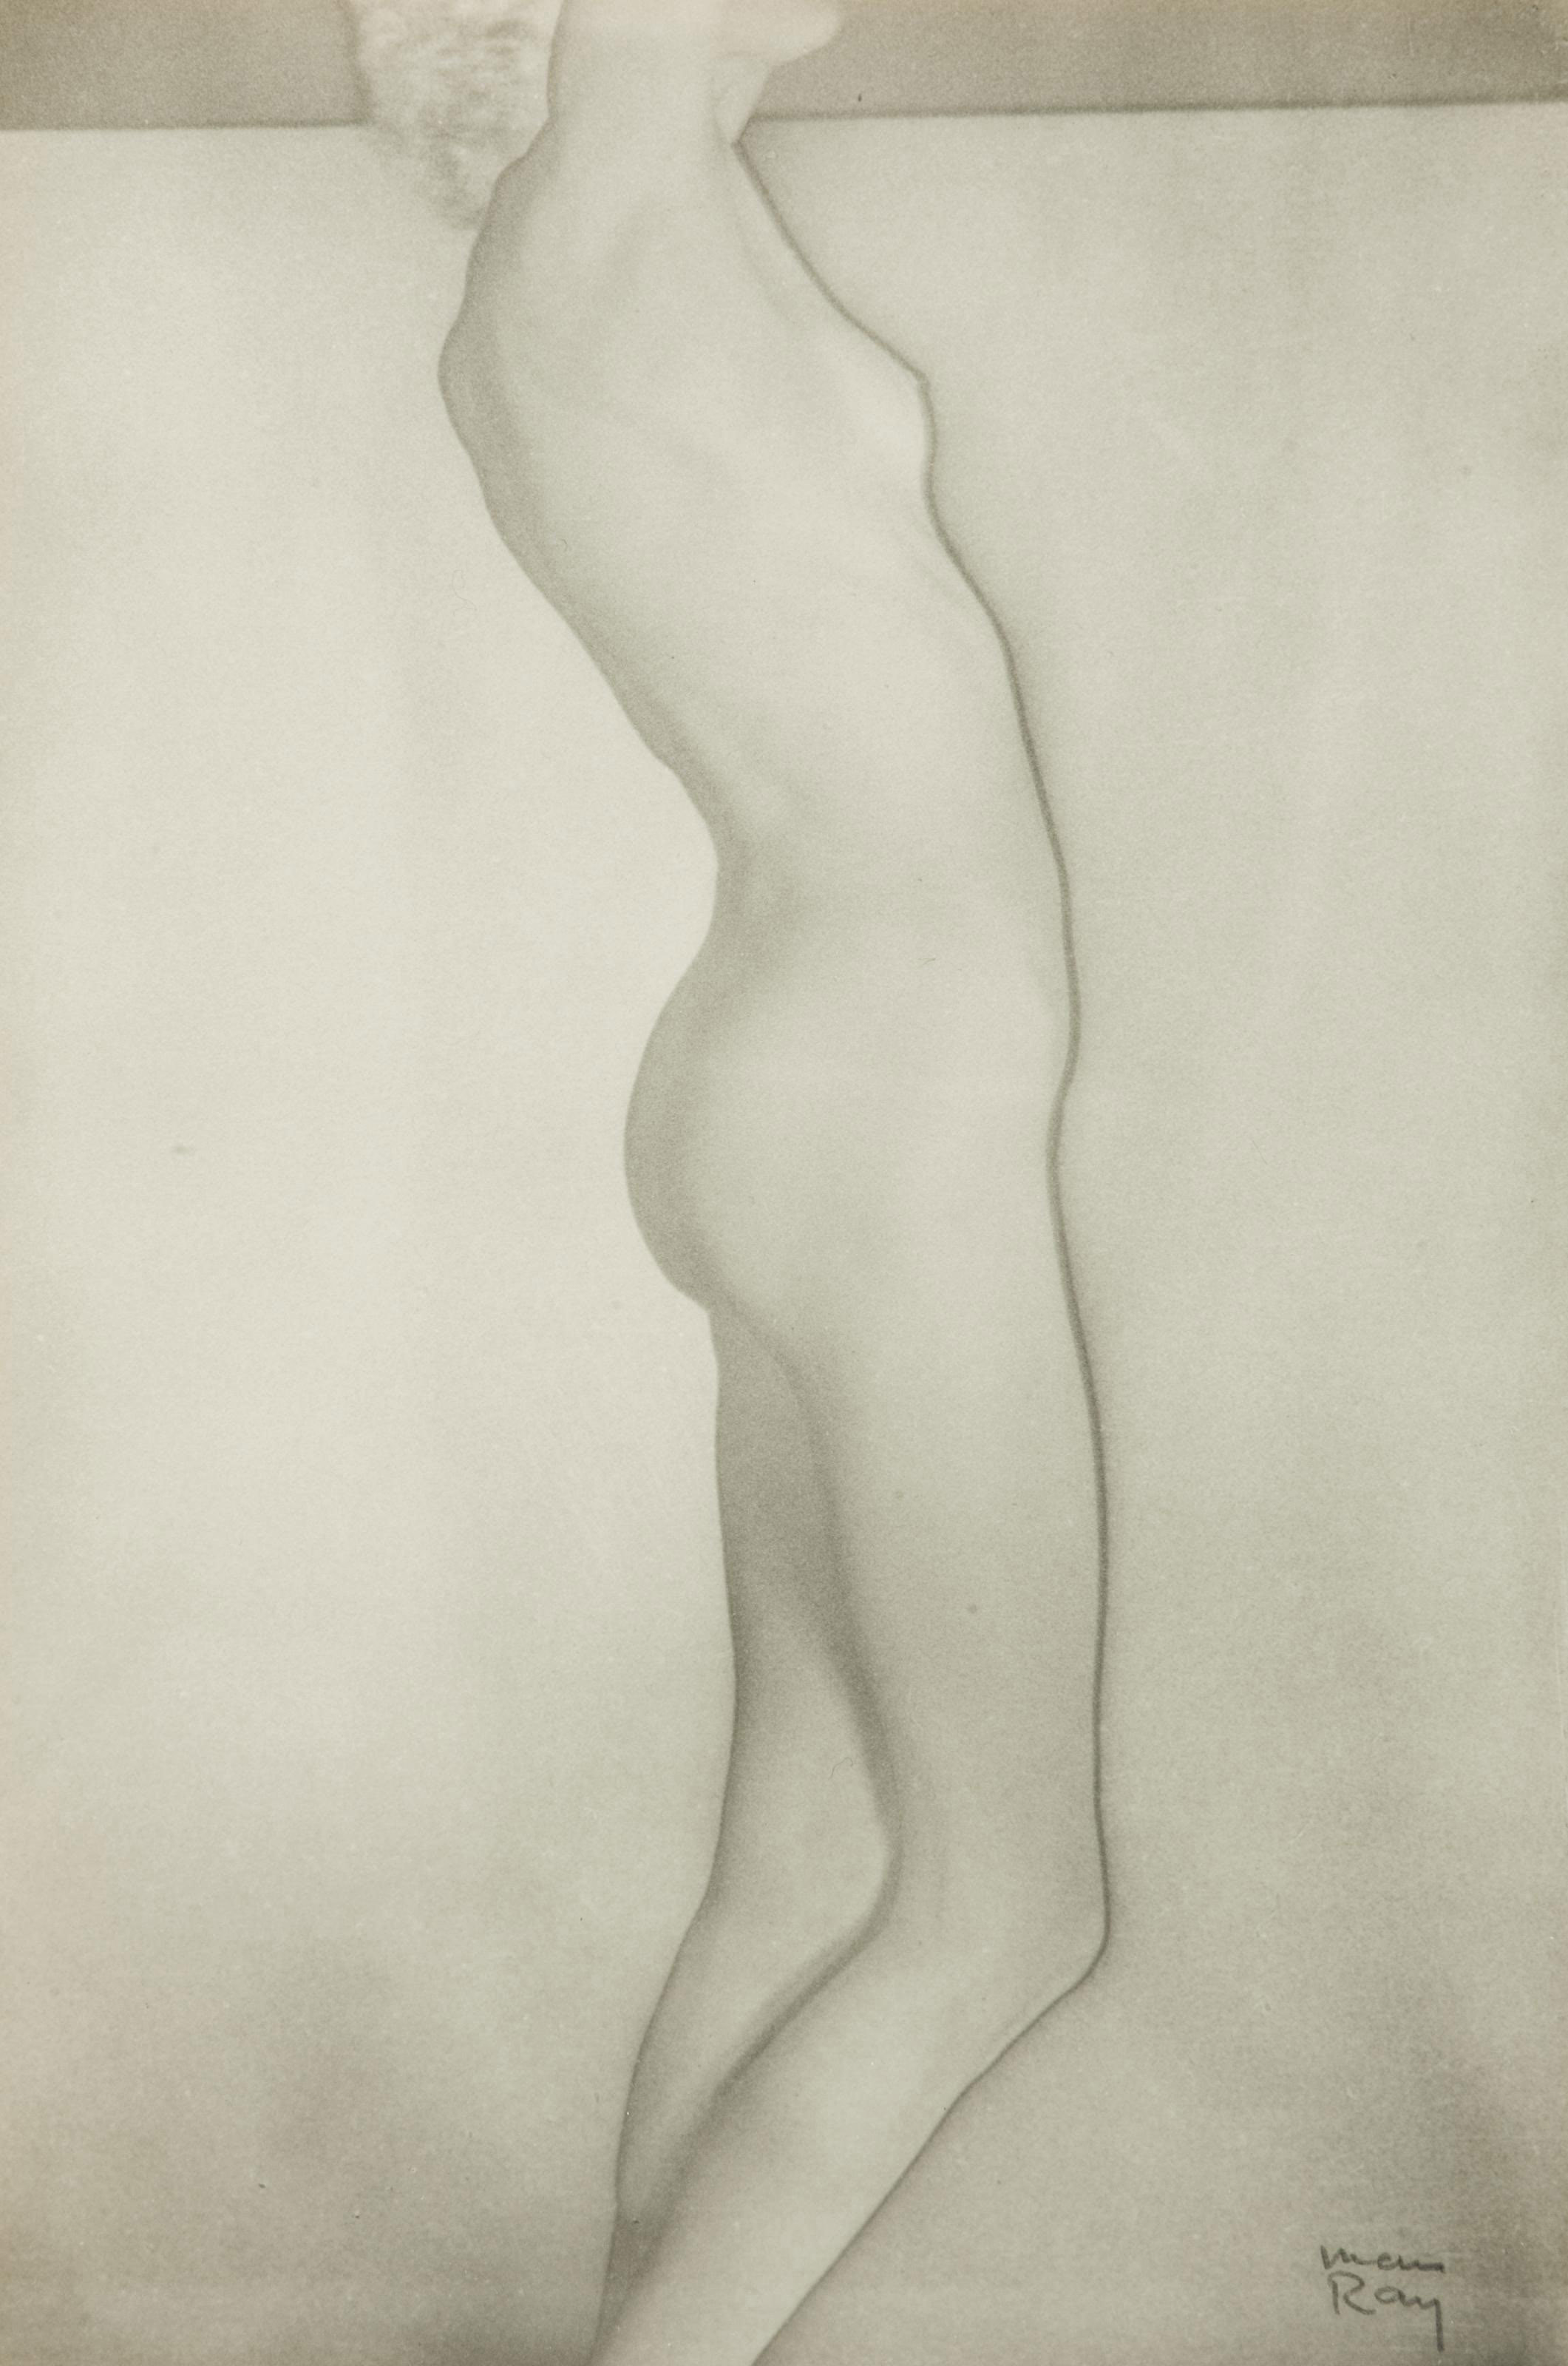 [MAN RAY] -- ÉLUARD, Paul (1895-1952). Facile. Poèmes de Paul Éluard, photographies de Man Ray. Paris: GLM, 1935.